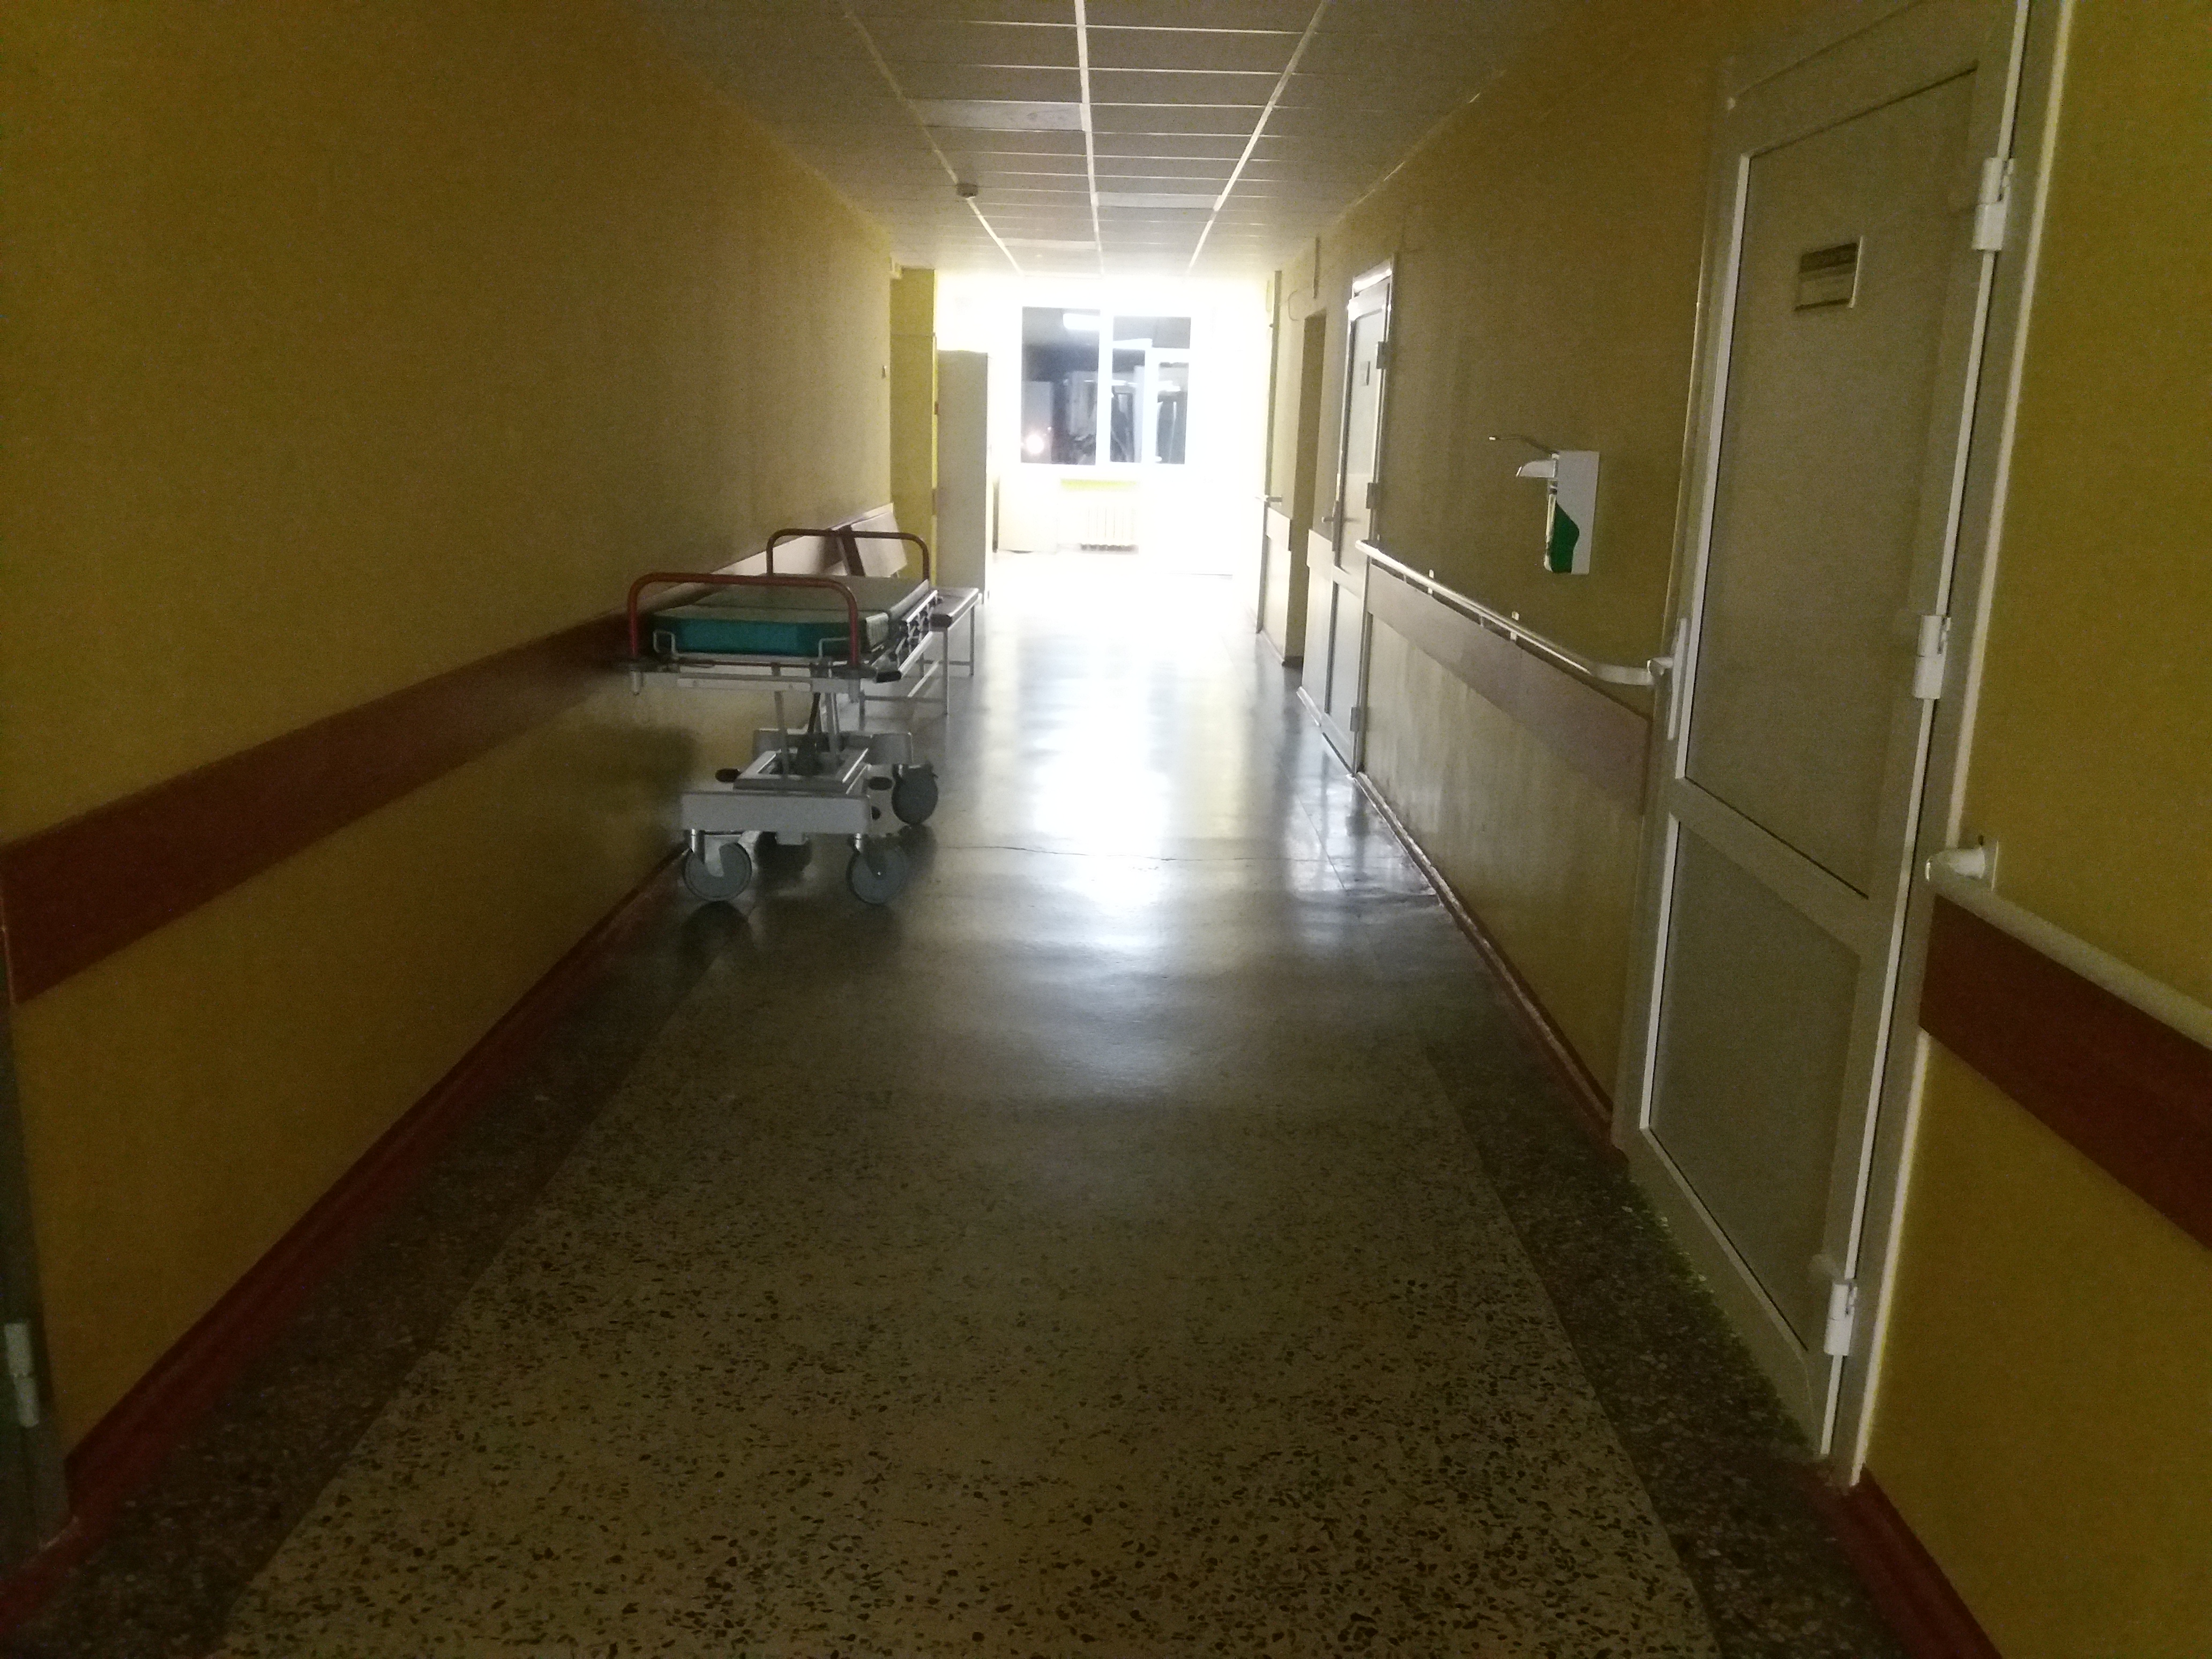 Hospital Light at the End Image